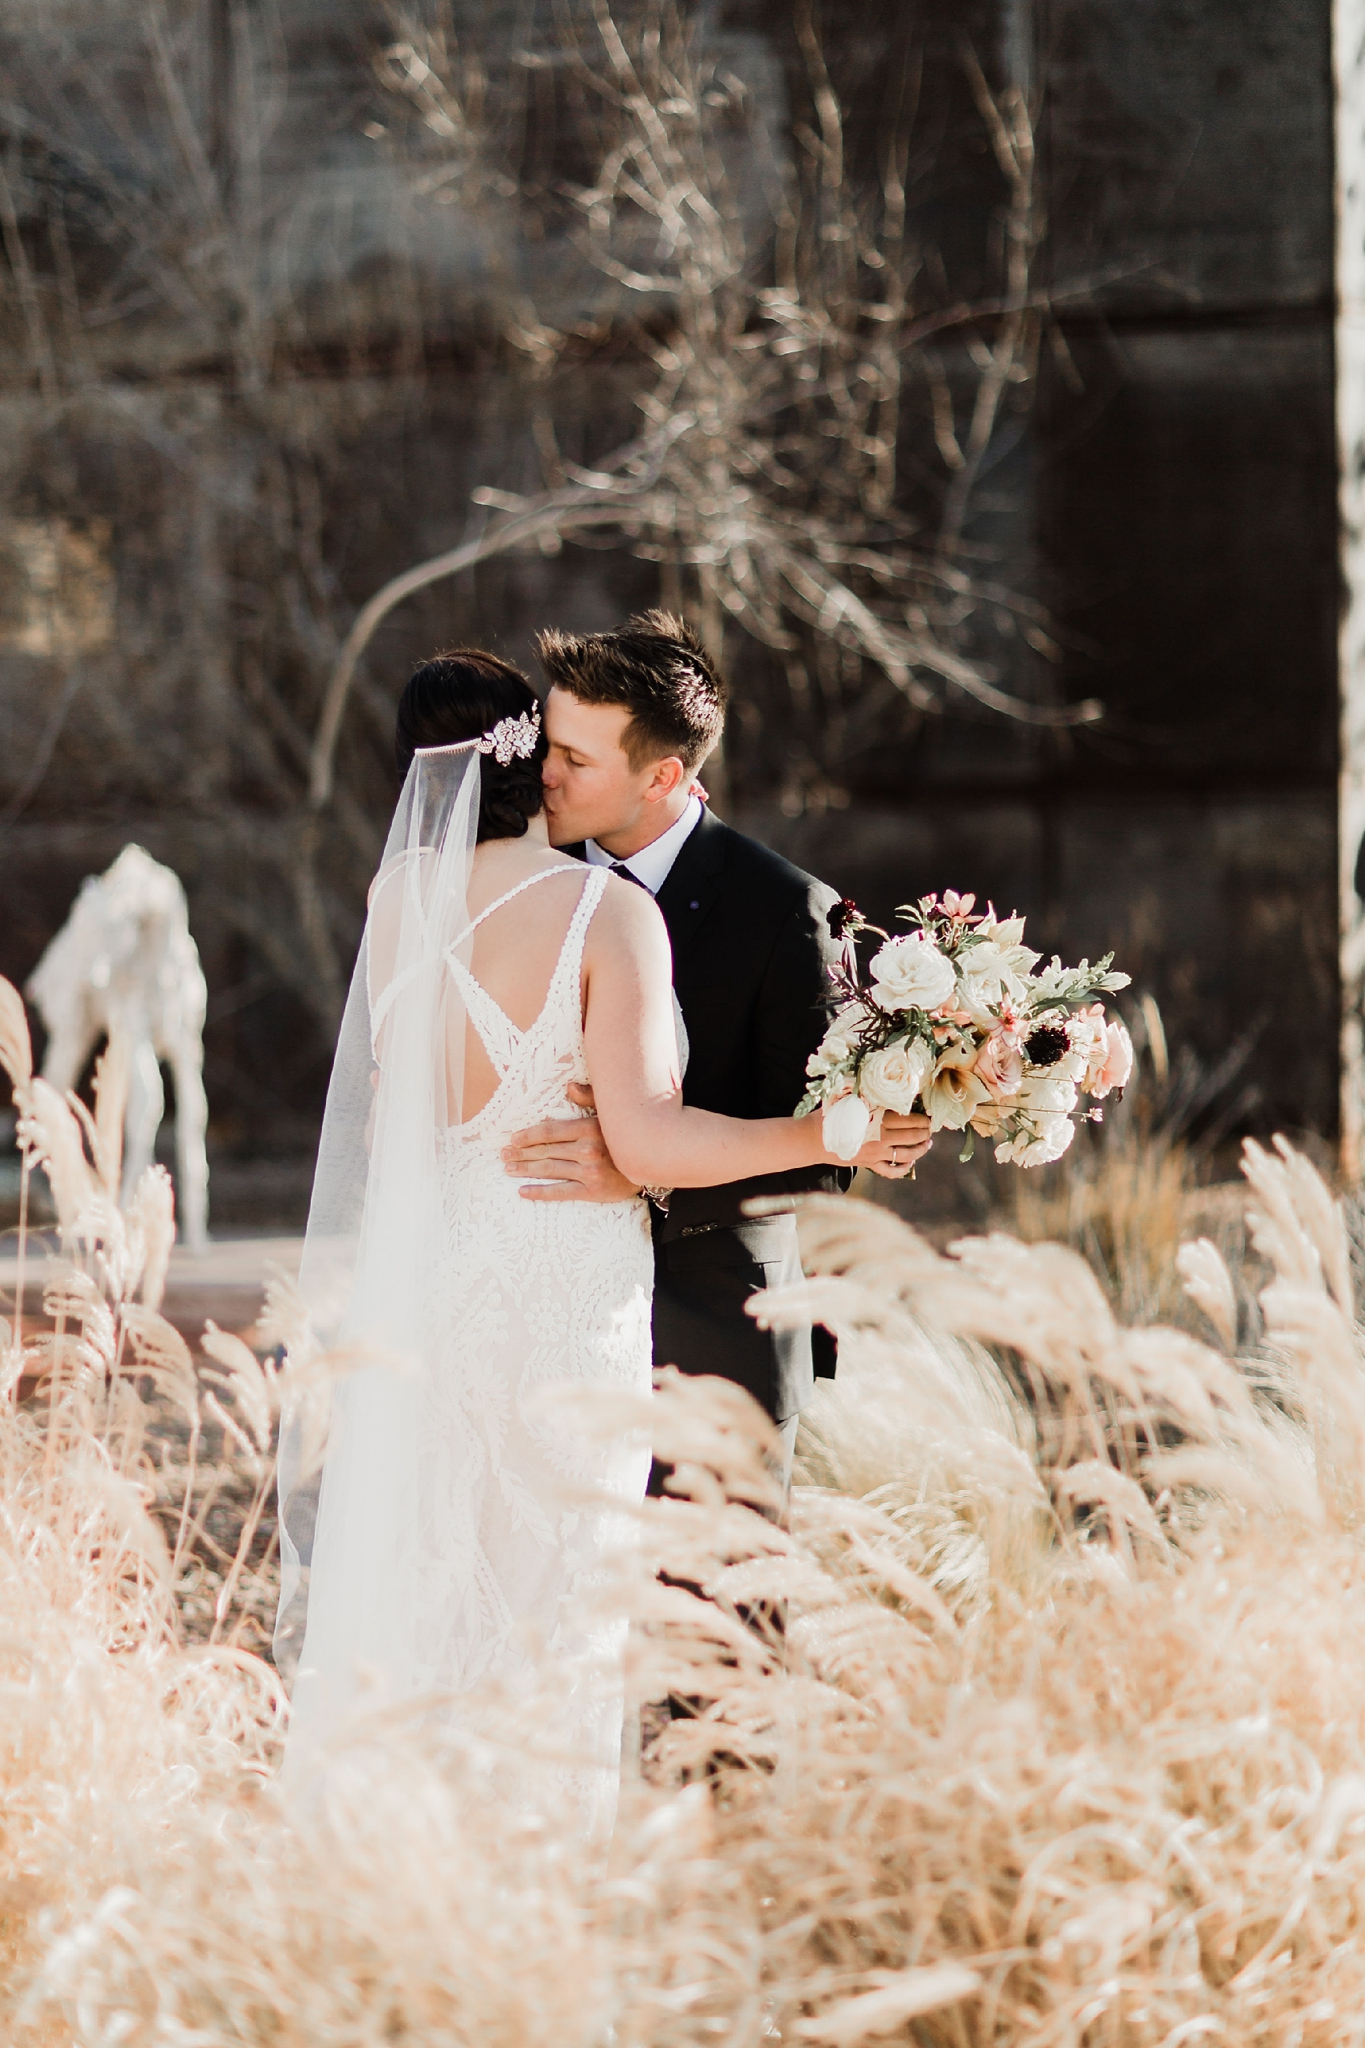 Alicia+lucia+photography+-+albuquerque+wedding+photographer+-+santa+fe+wedding+photography+-+new+mexico+wedding+photographer+-+new+mexico+wedding+-+santa+fe+wedding+-+four+seasons+wedding+-+winter+wedding_0033.jpg